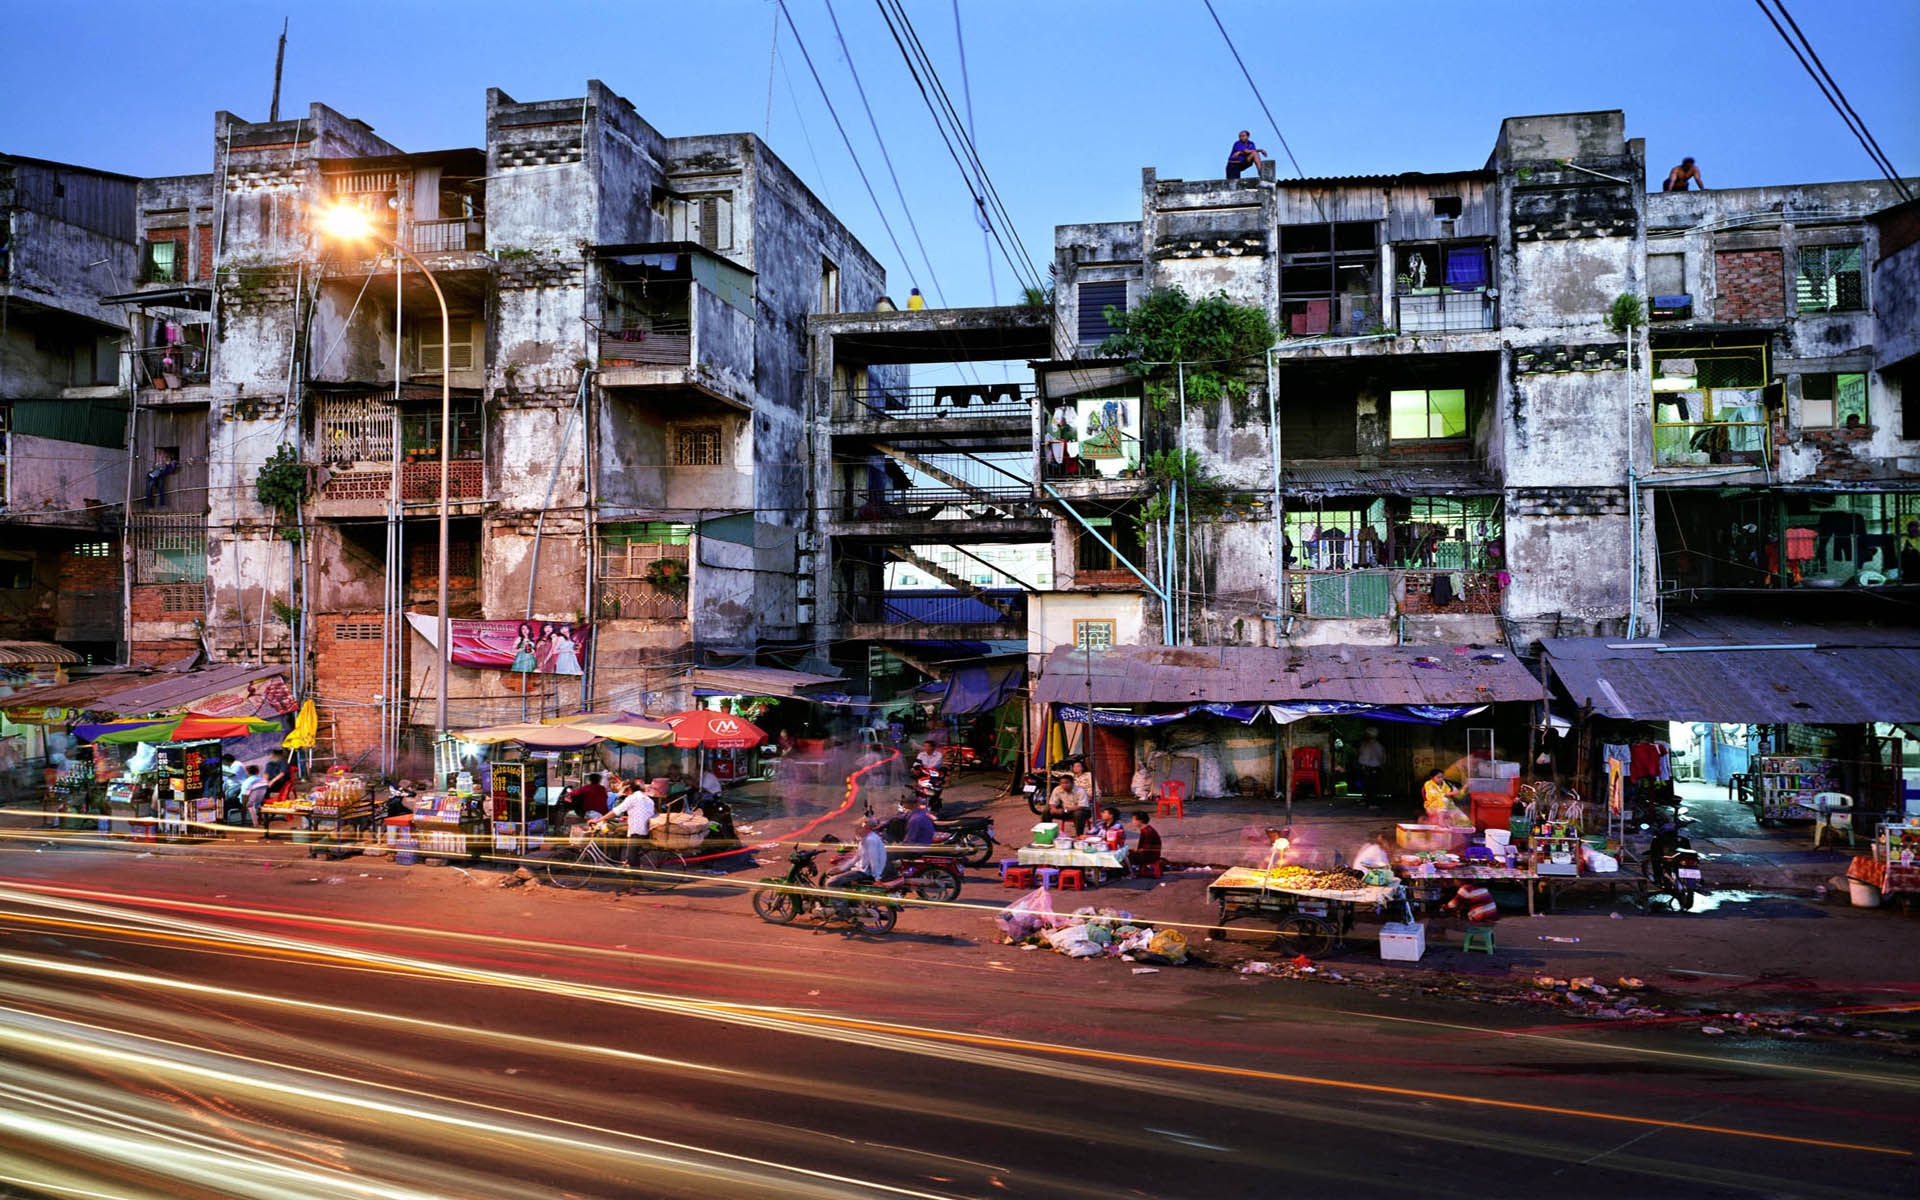 Slums in Phnom Penh, Cambodia